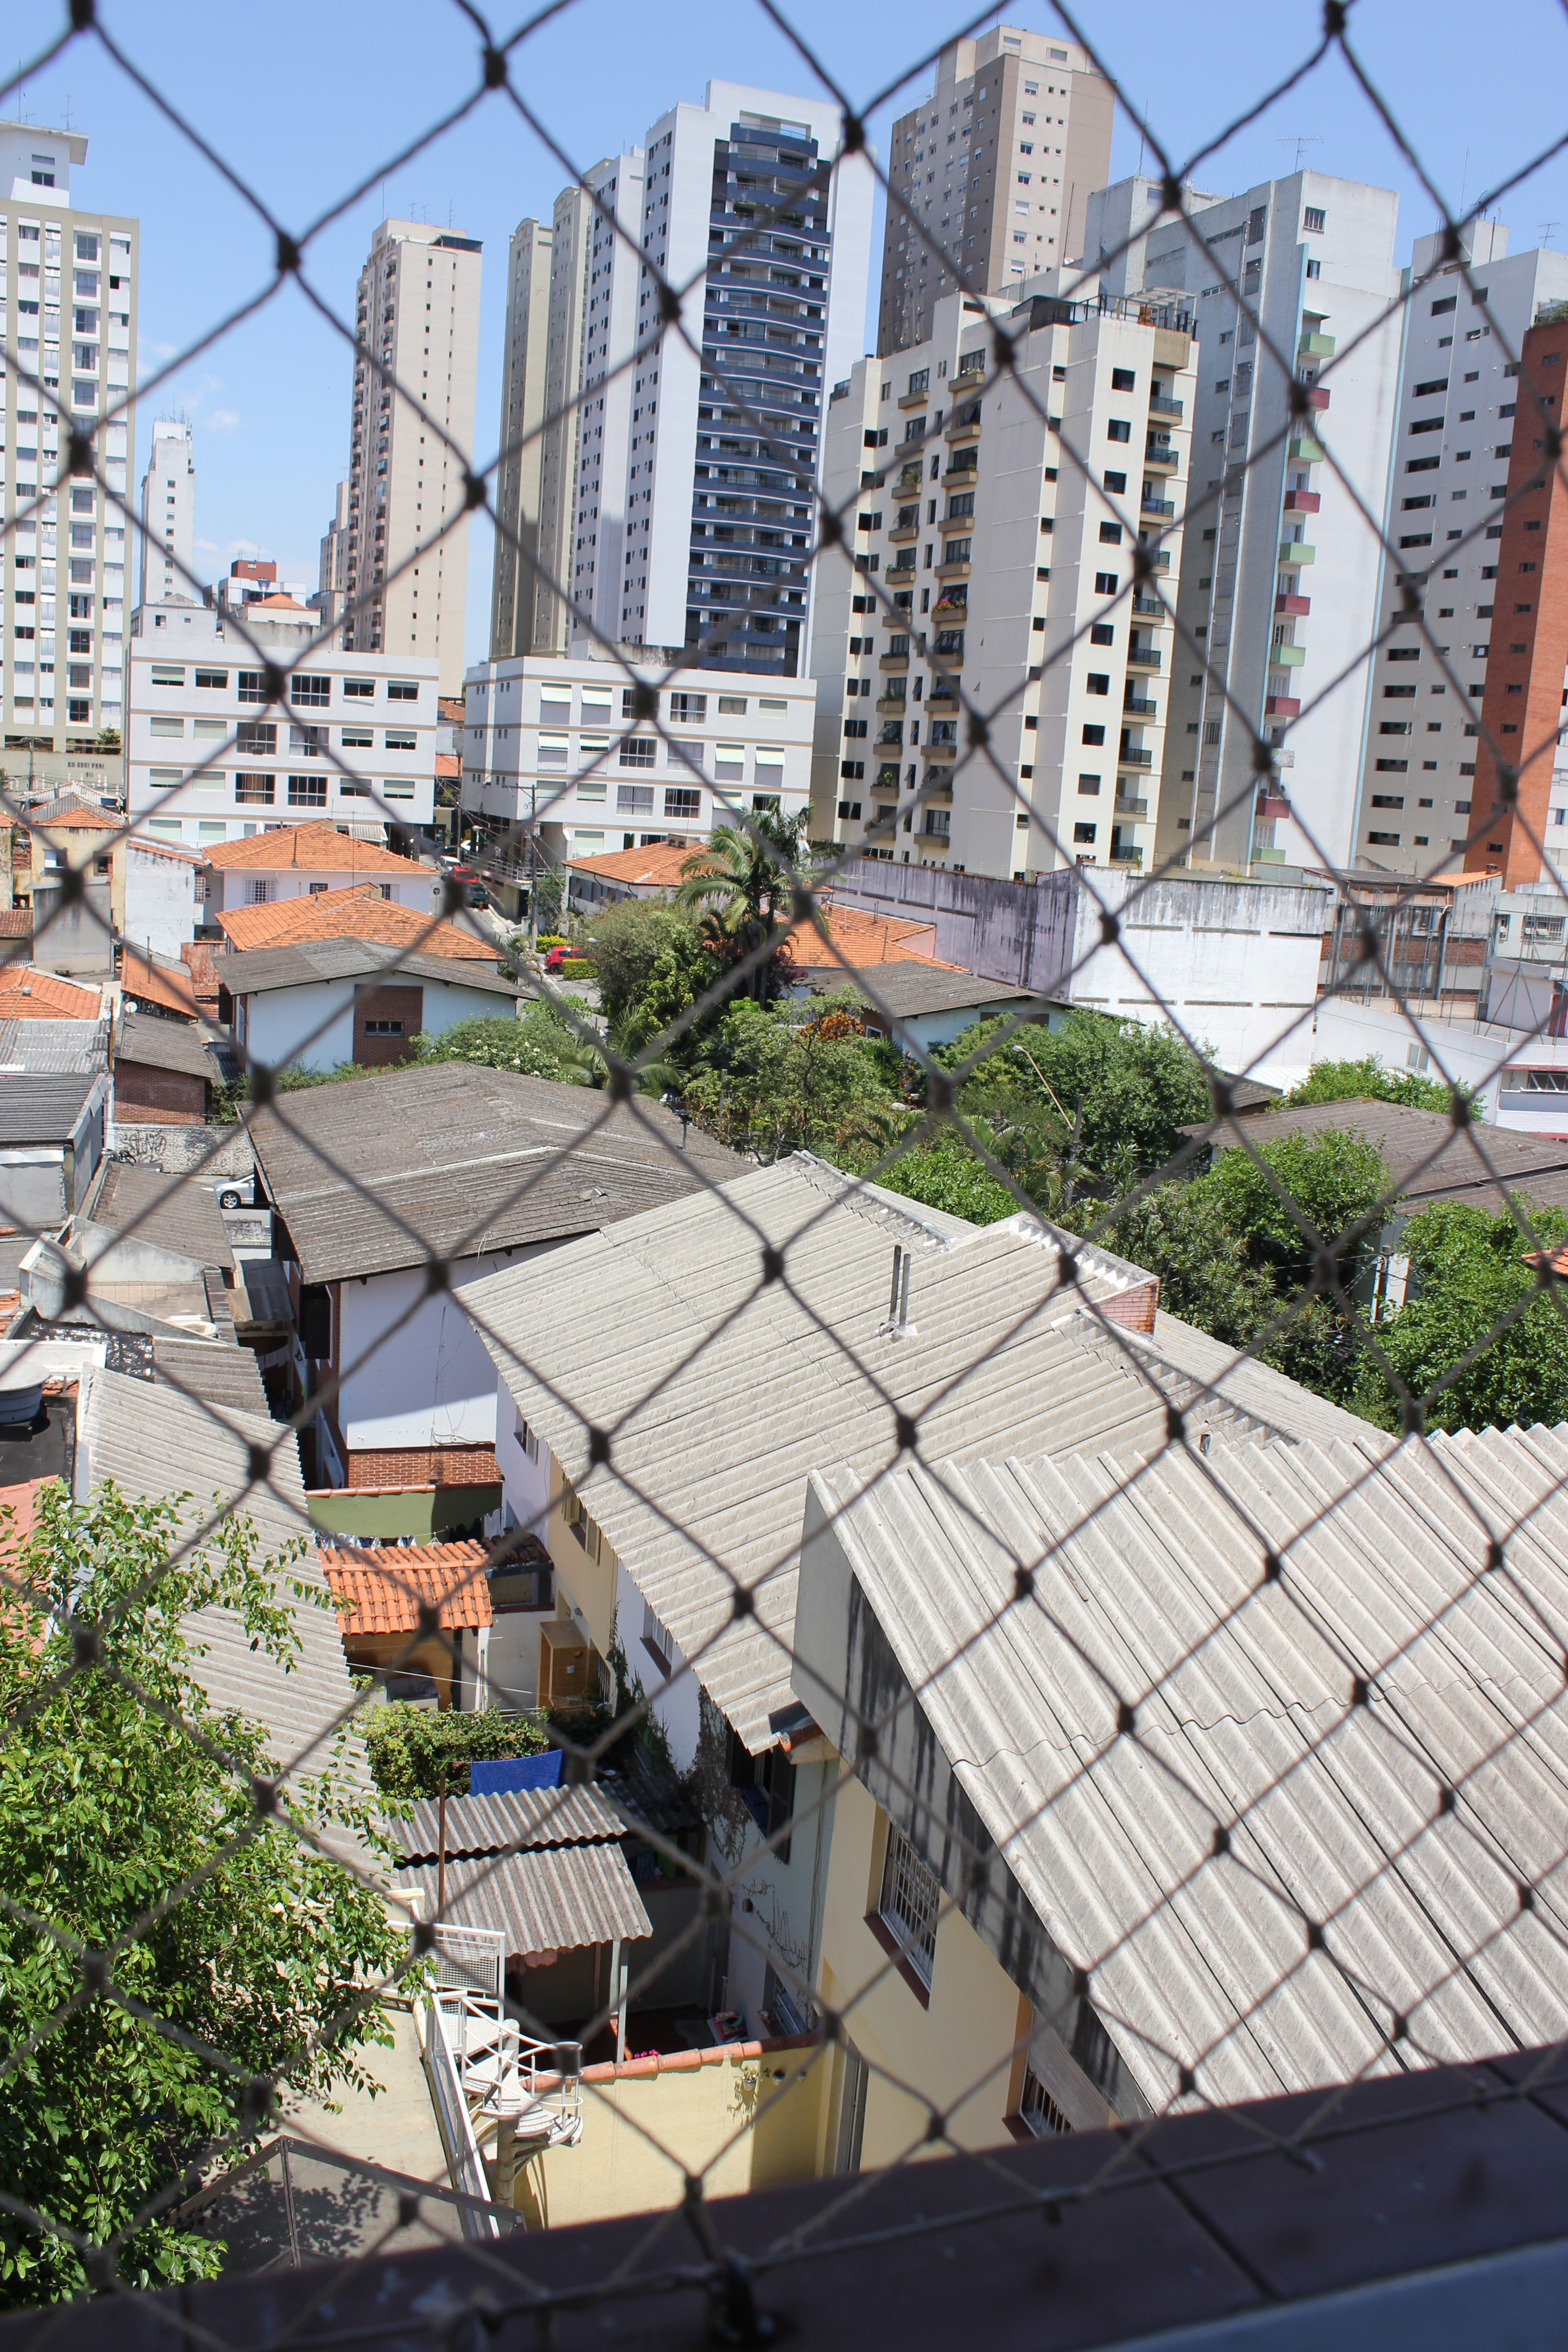 View of Sao Paulo neighborhoods and high rise apartments from APAE